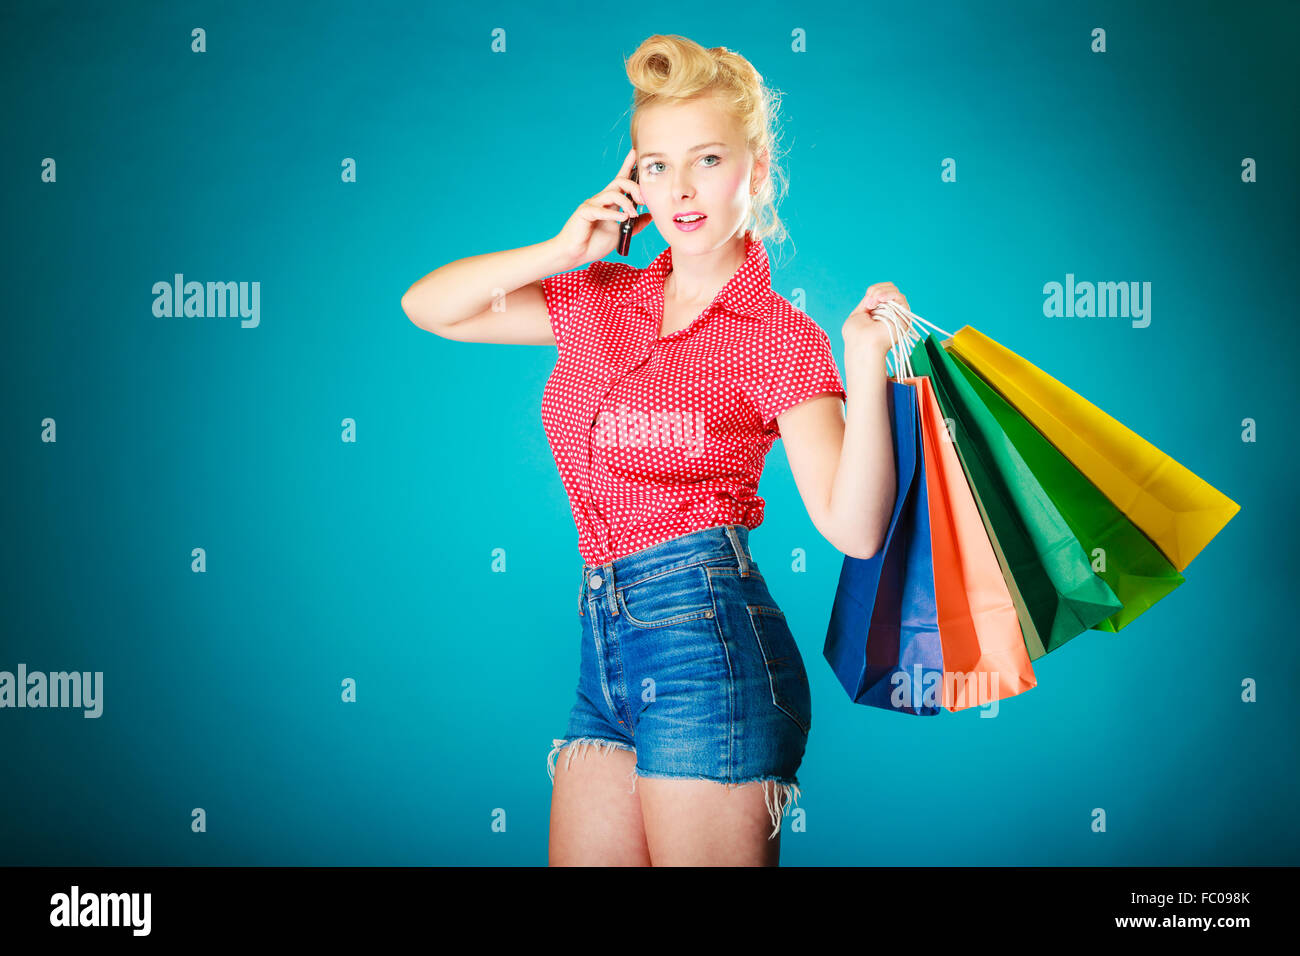 Pinup girl with shopping bags calling on phone - Stock Image